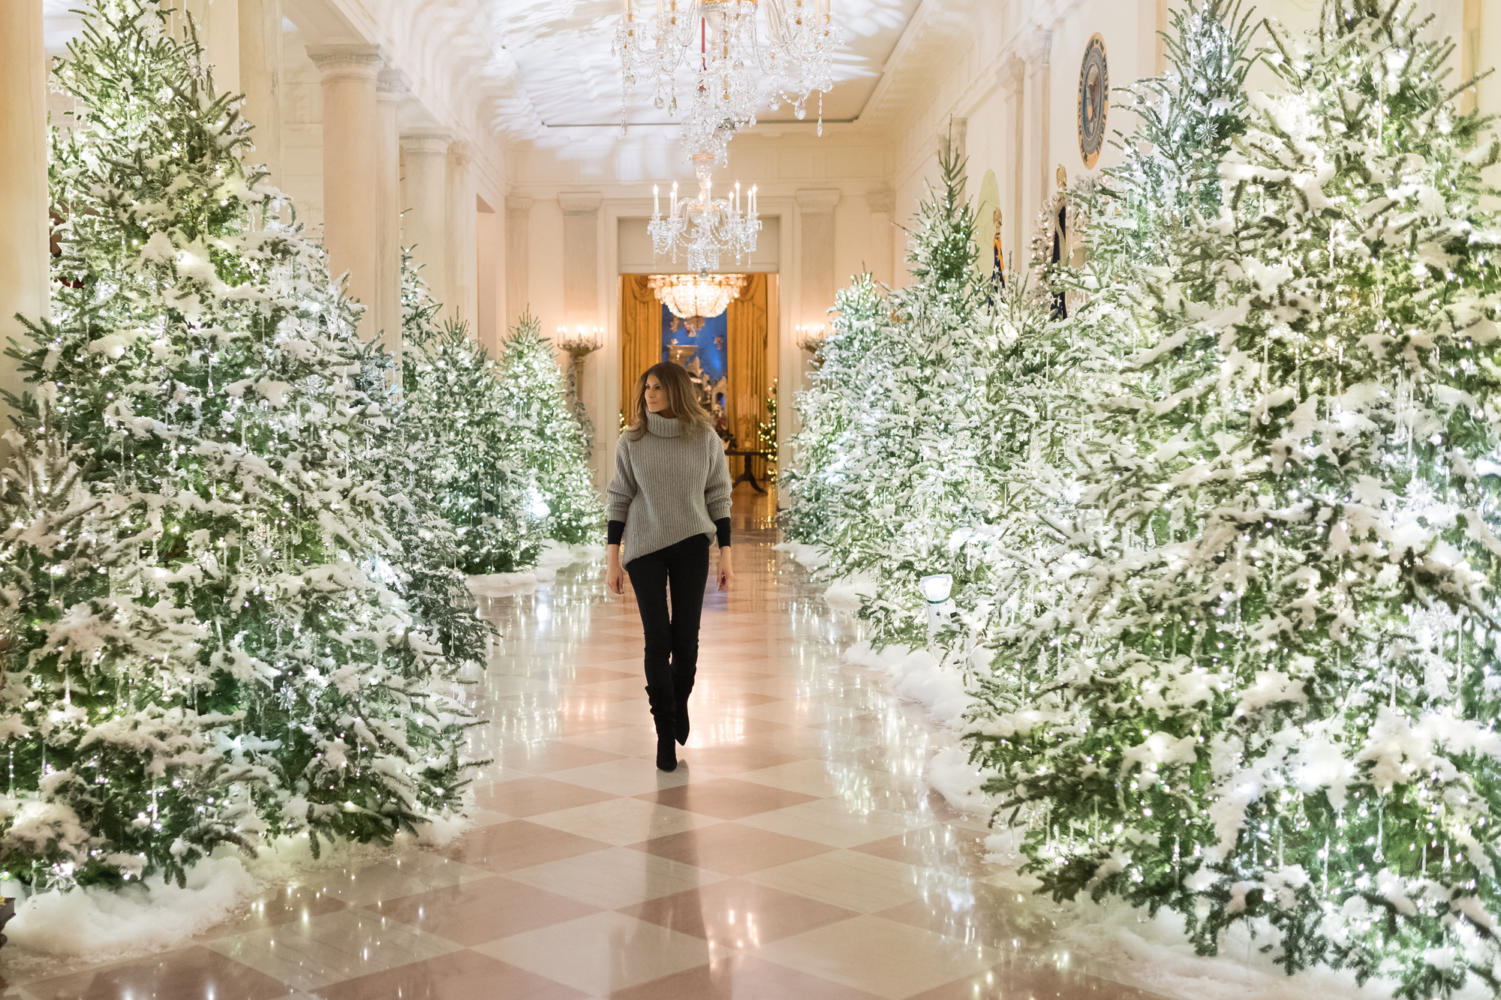 For the annual White House Christmas, First Lady Melania Trump went all out on decorations.